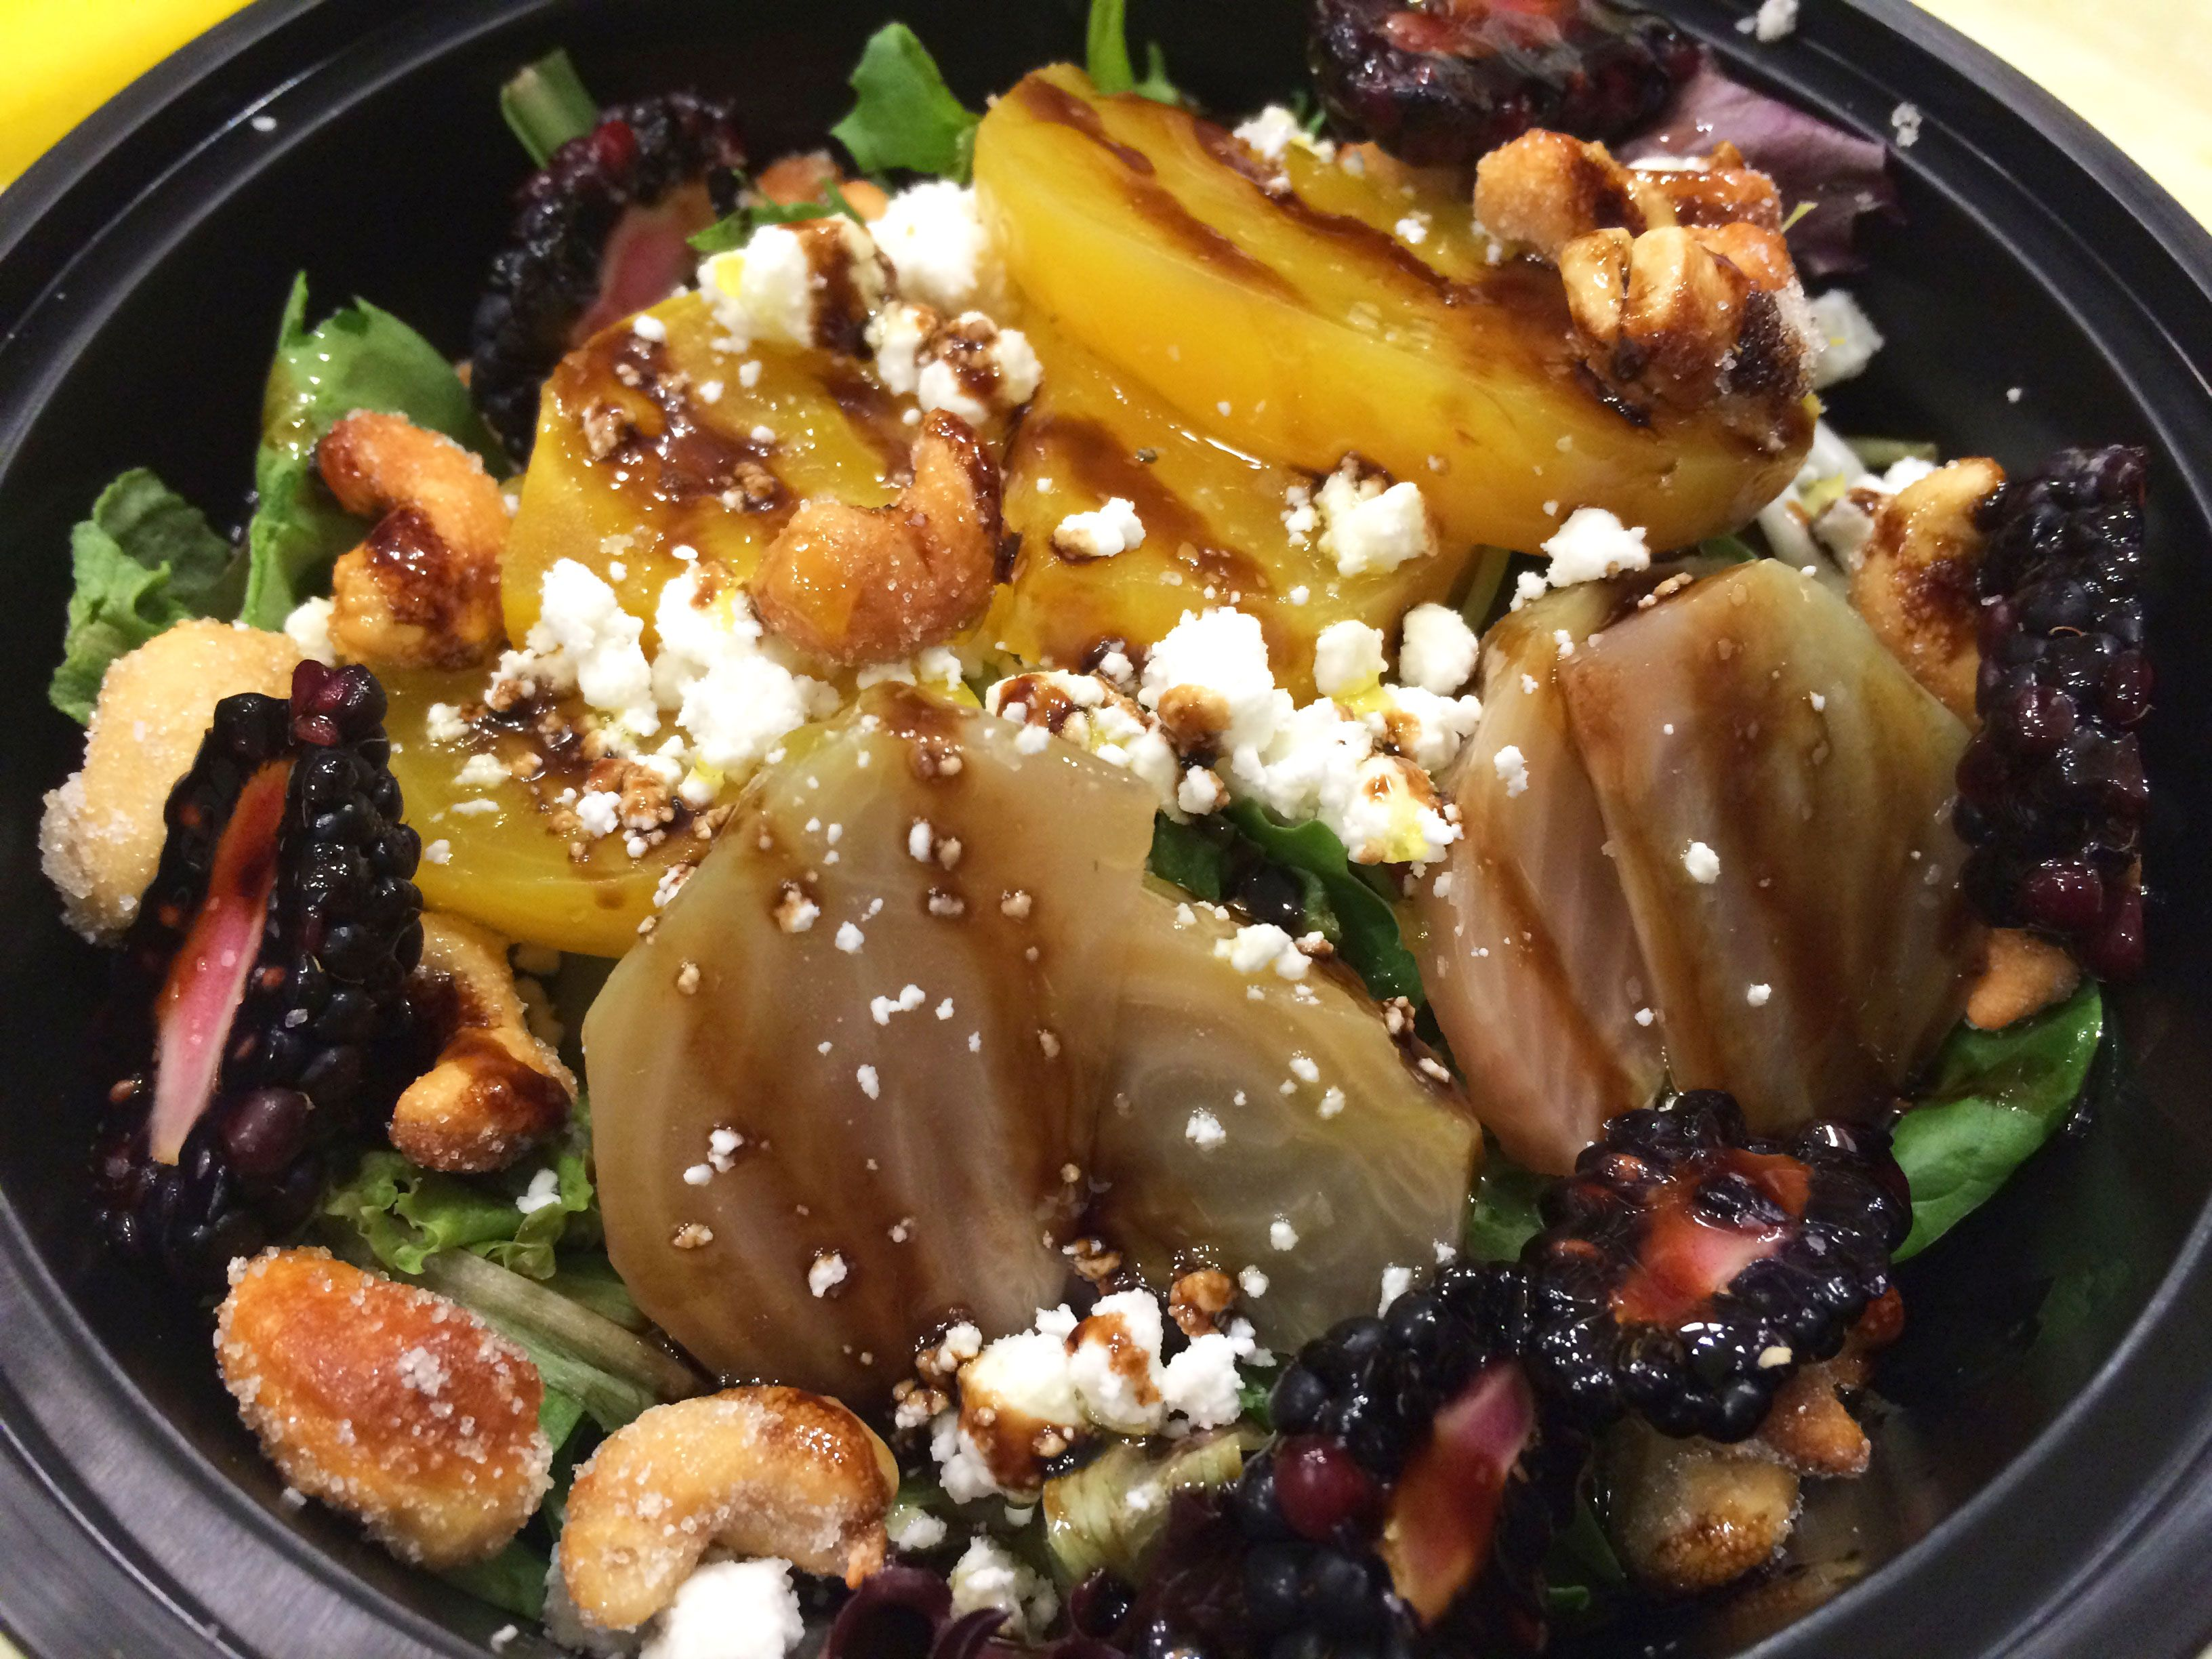 Beet Salad from OLiV Tasting Room & Bistro - located in Outlet Collection Niagara, Niagara-on-the-Lake. #ocniagara #niagara #evoo #tastingroom #oliv #oliveoil #balsamic #franchise #business #healthy #food #health #canadian #ontario #canada #salad #beet